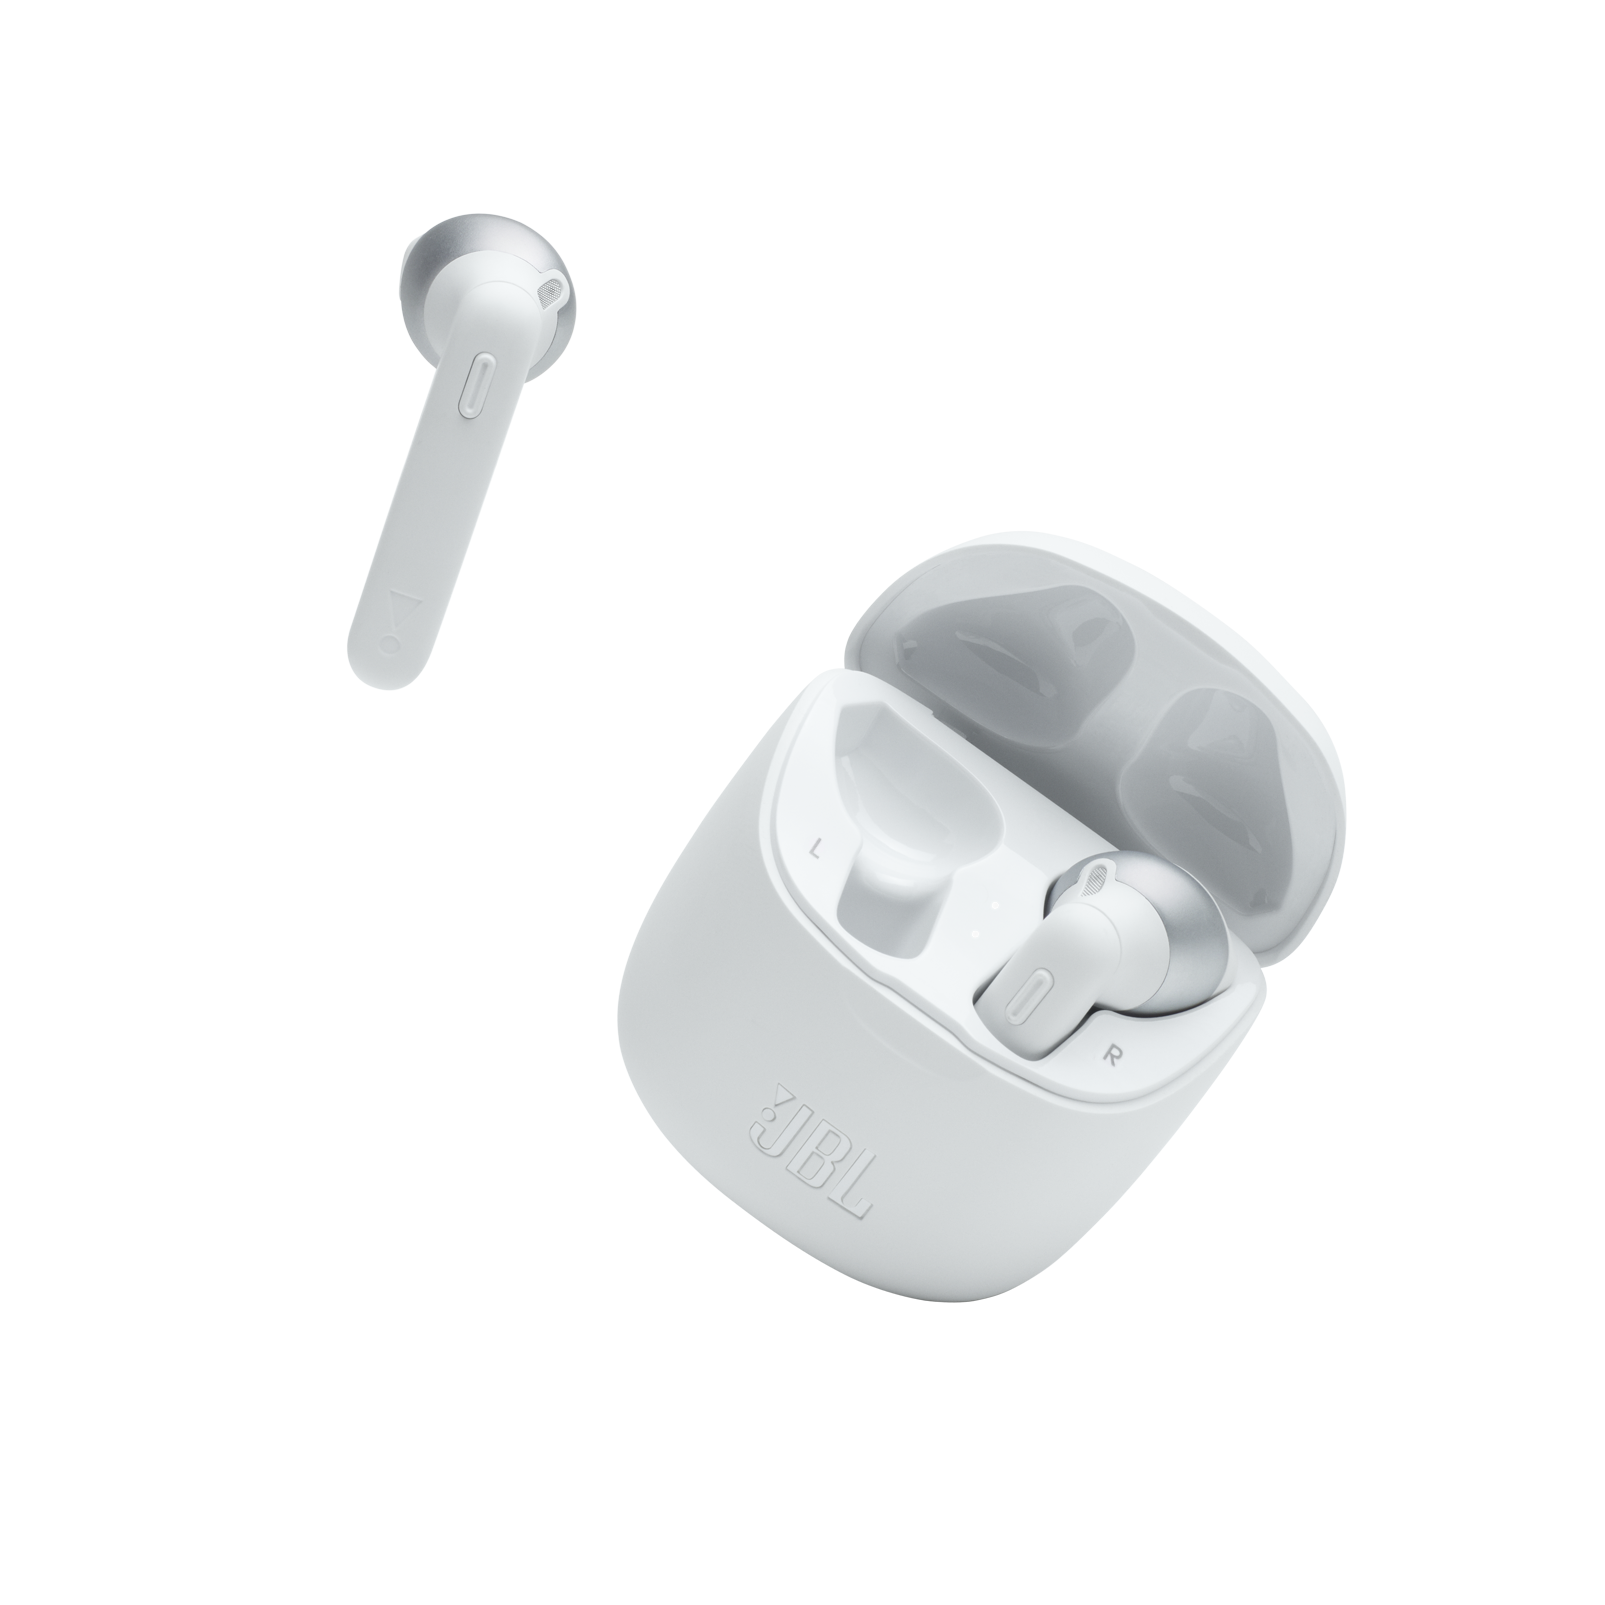 JBL TUNE 225TWS - White - True wireless earbud headphones - Detailshot 3